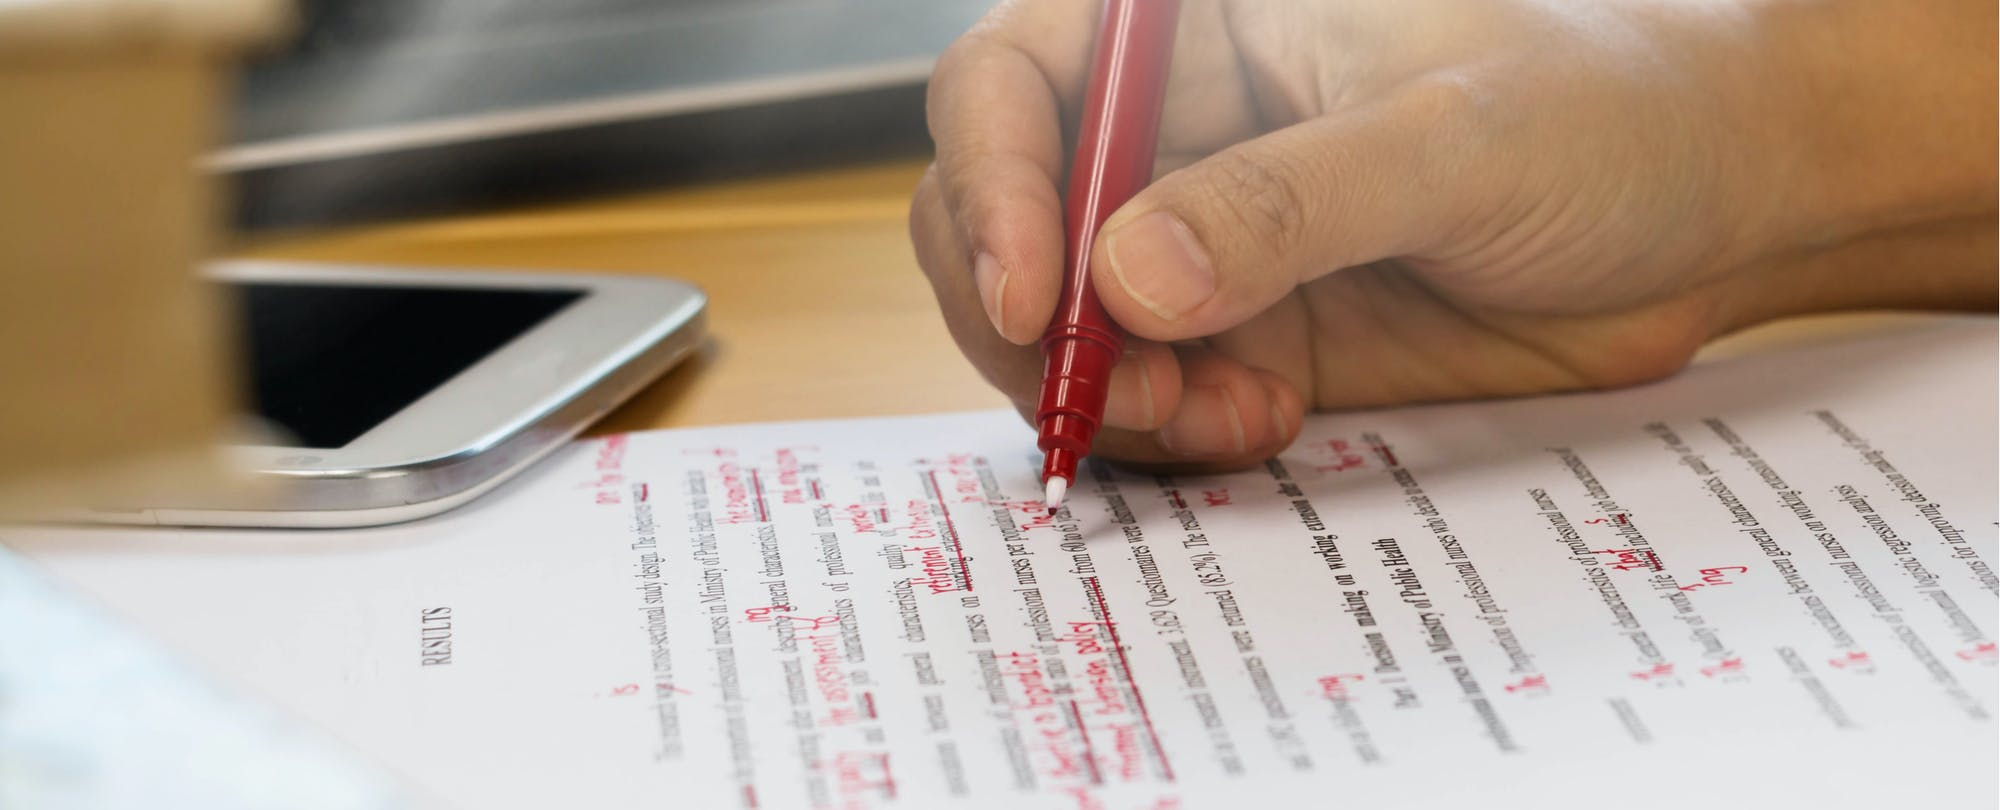 Application Essays Can Help Students Get Into College. Could They Also Predict Their Success?